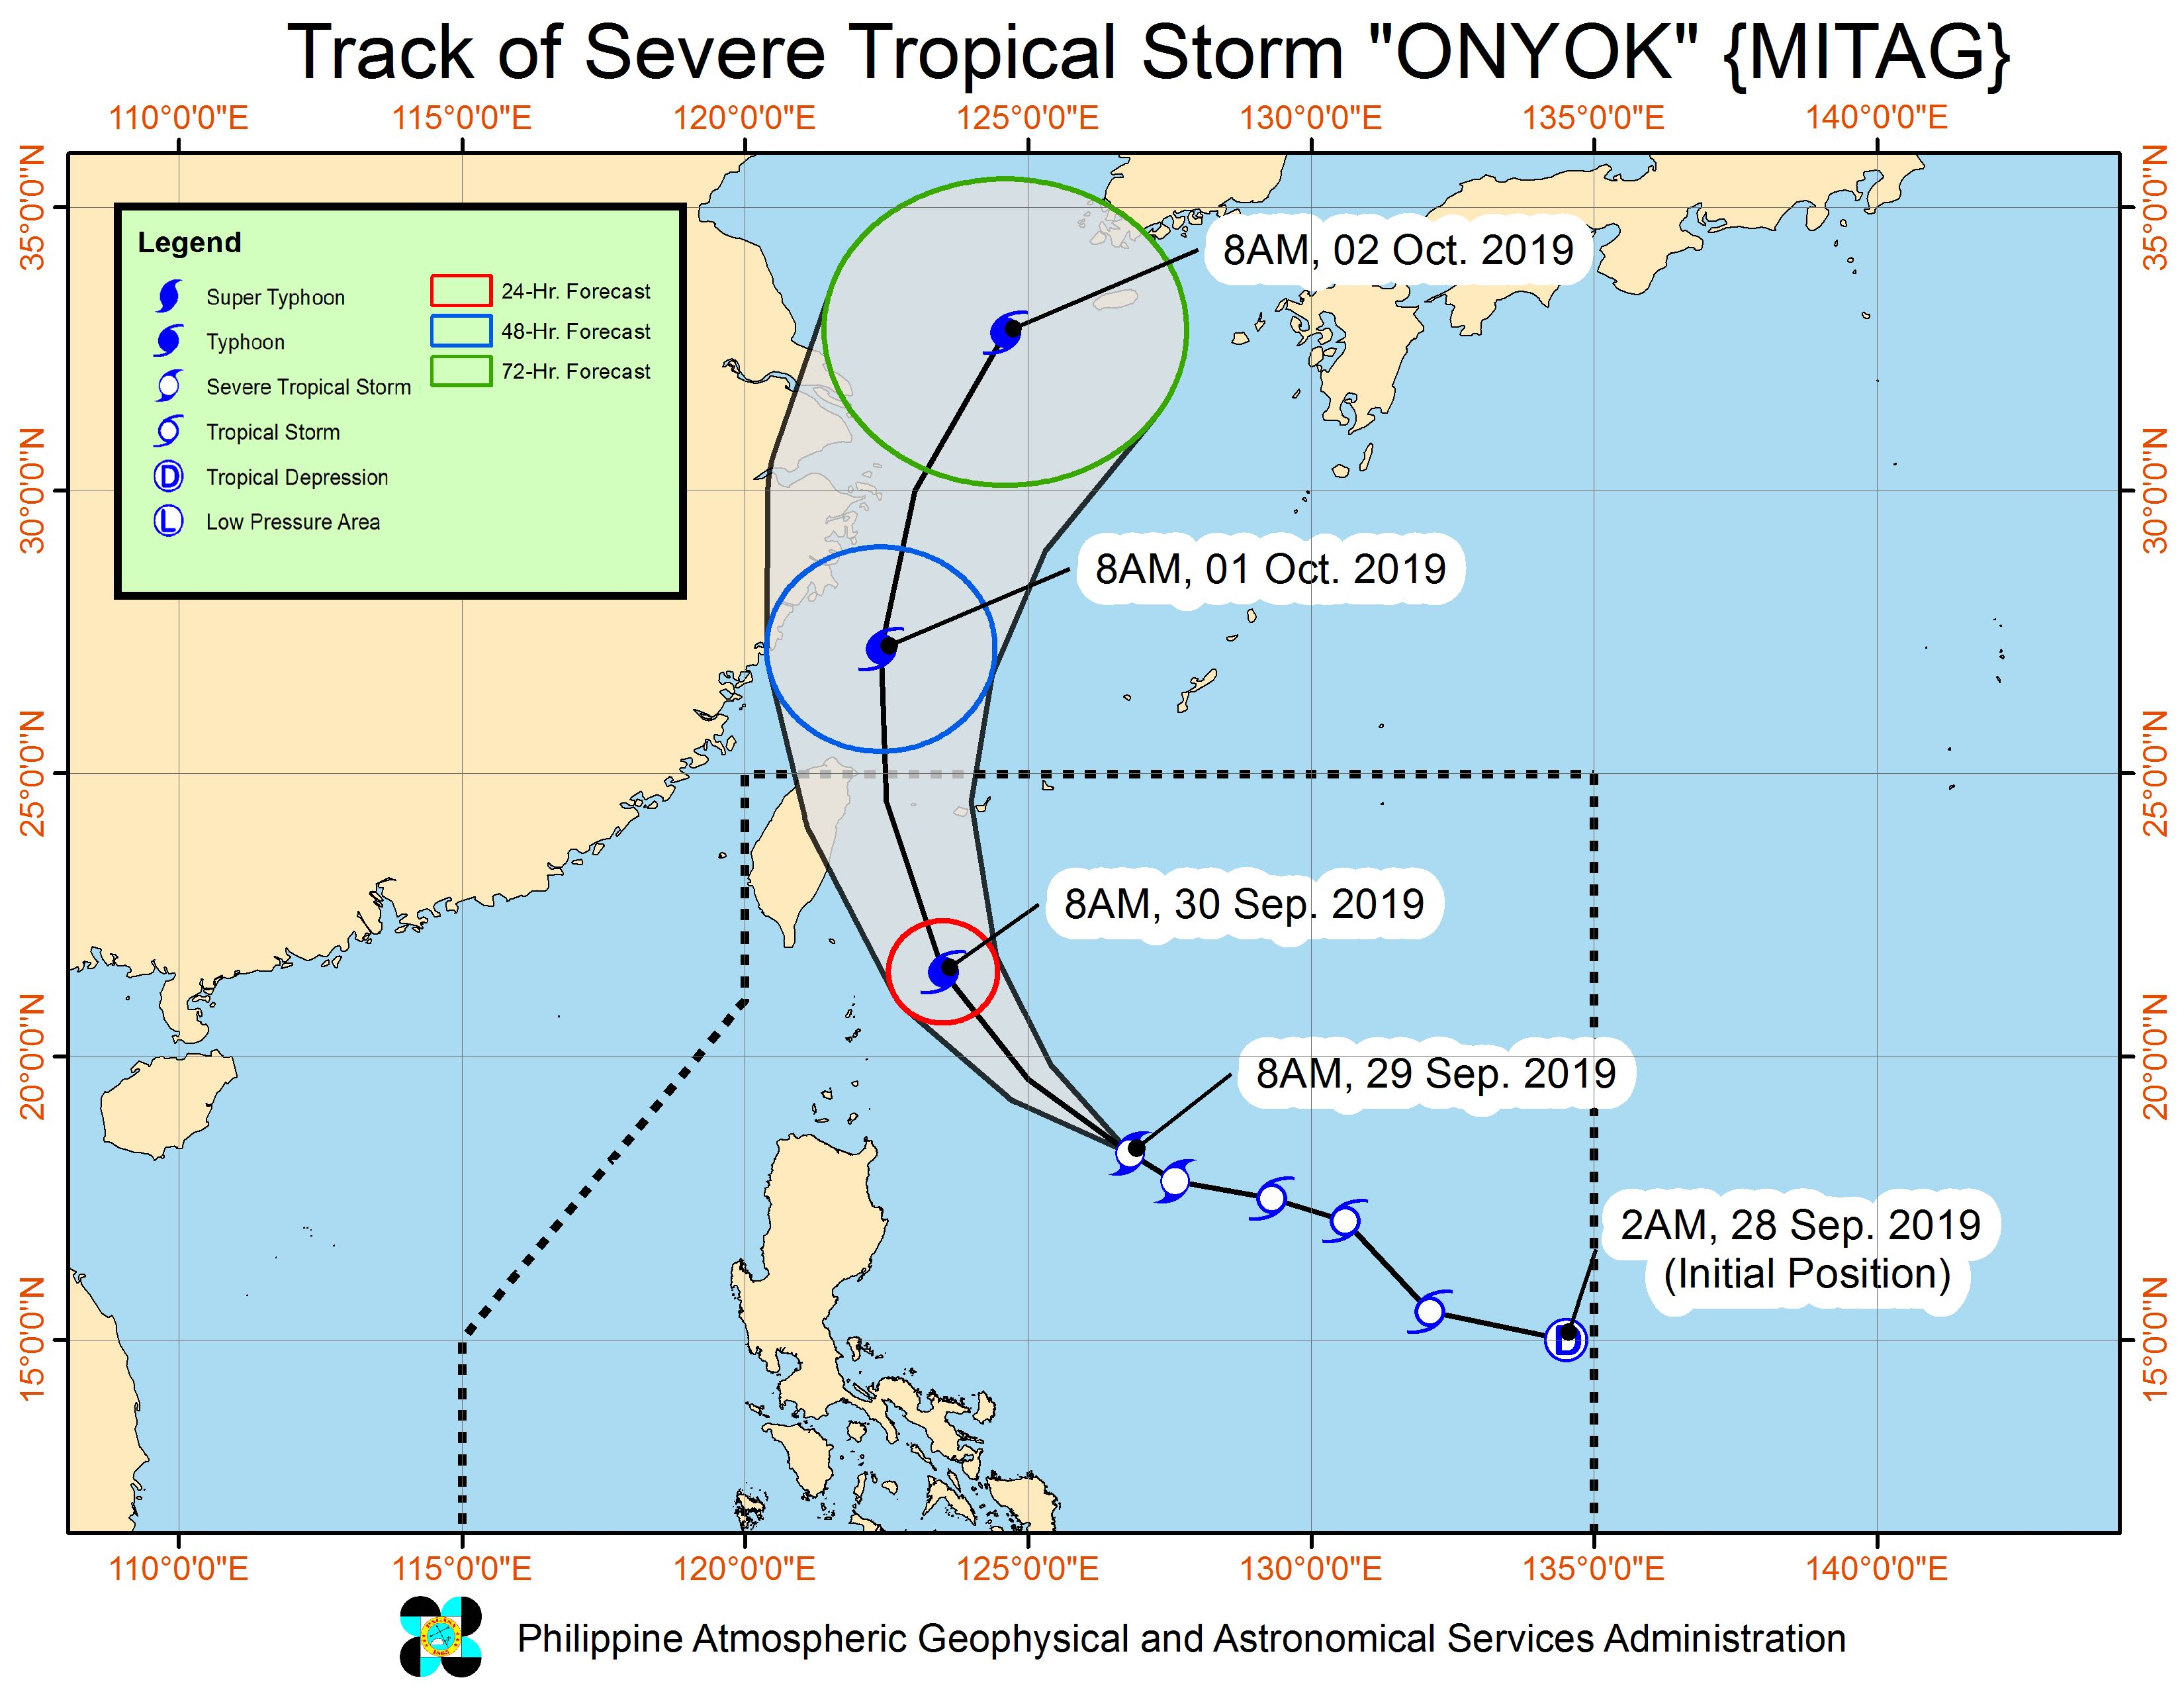 Forecast track of Severe Tropical Storm Onyok (Mitag) as of September 29, 2019, 11 am. Image from PAGASA